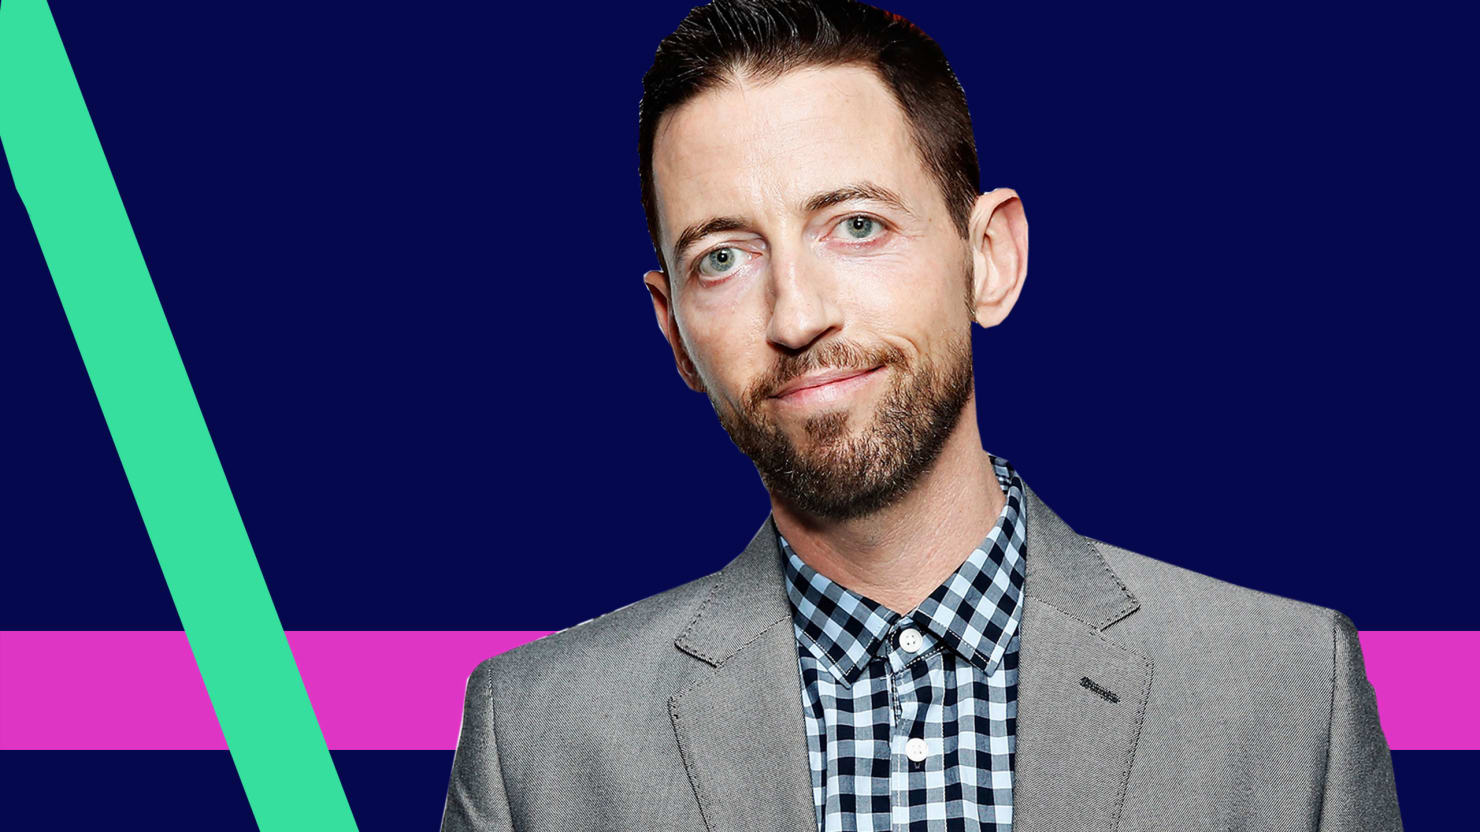 Dave chappelle neal brennan 2017